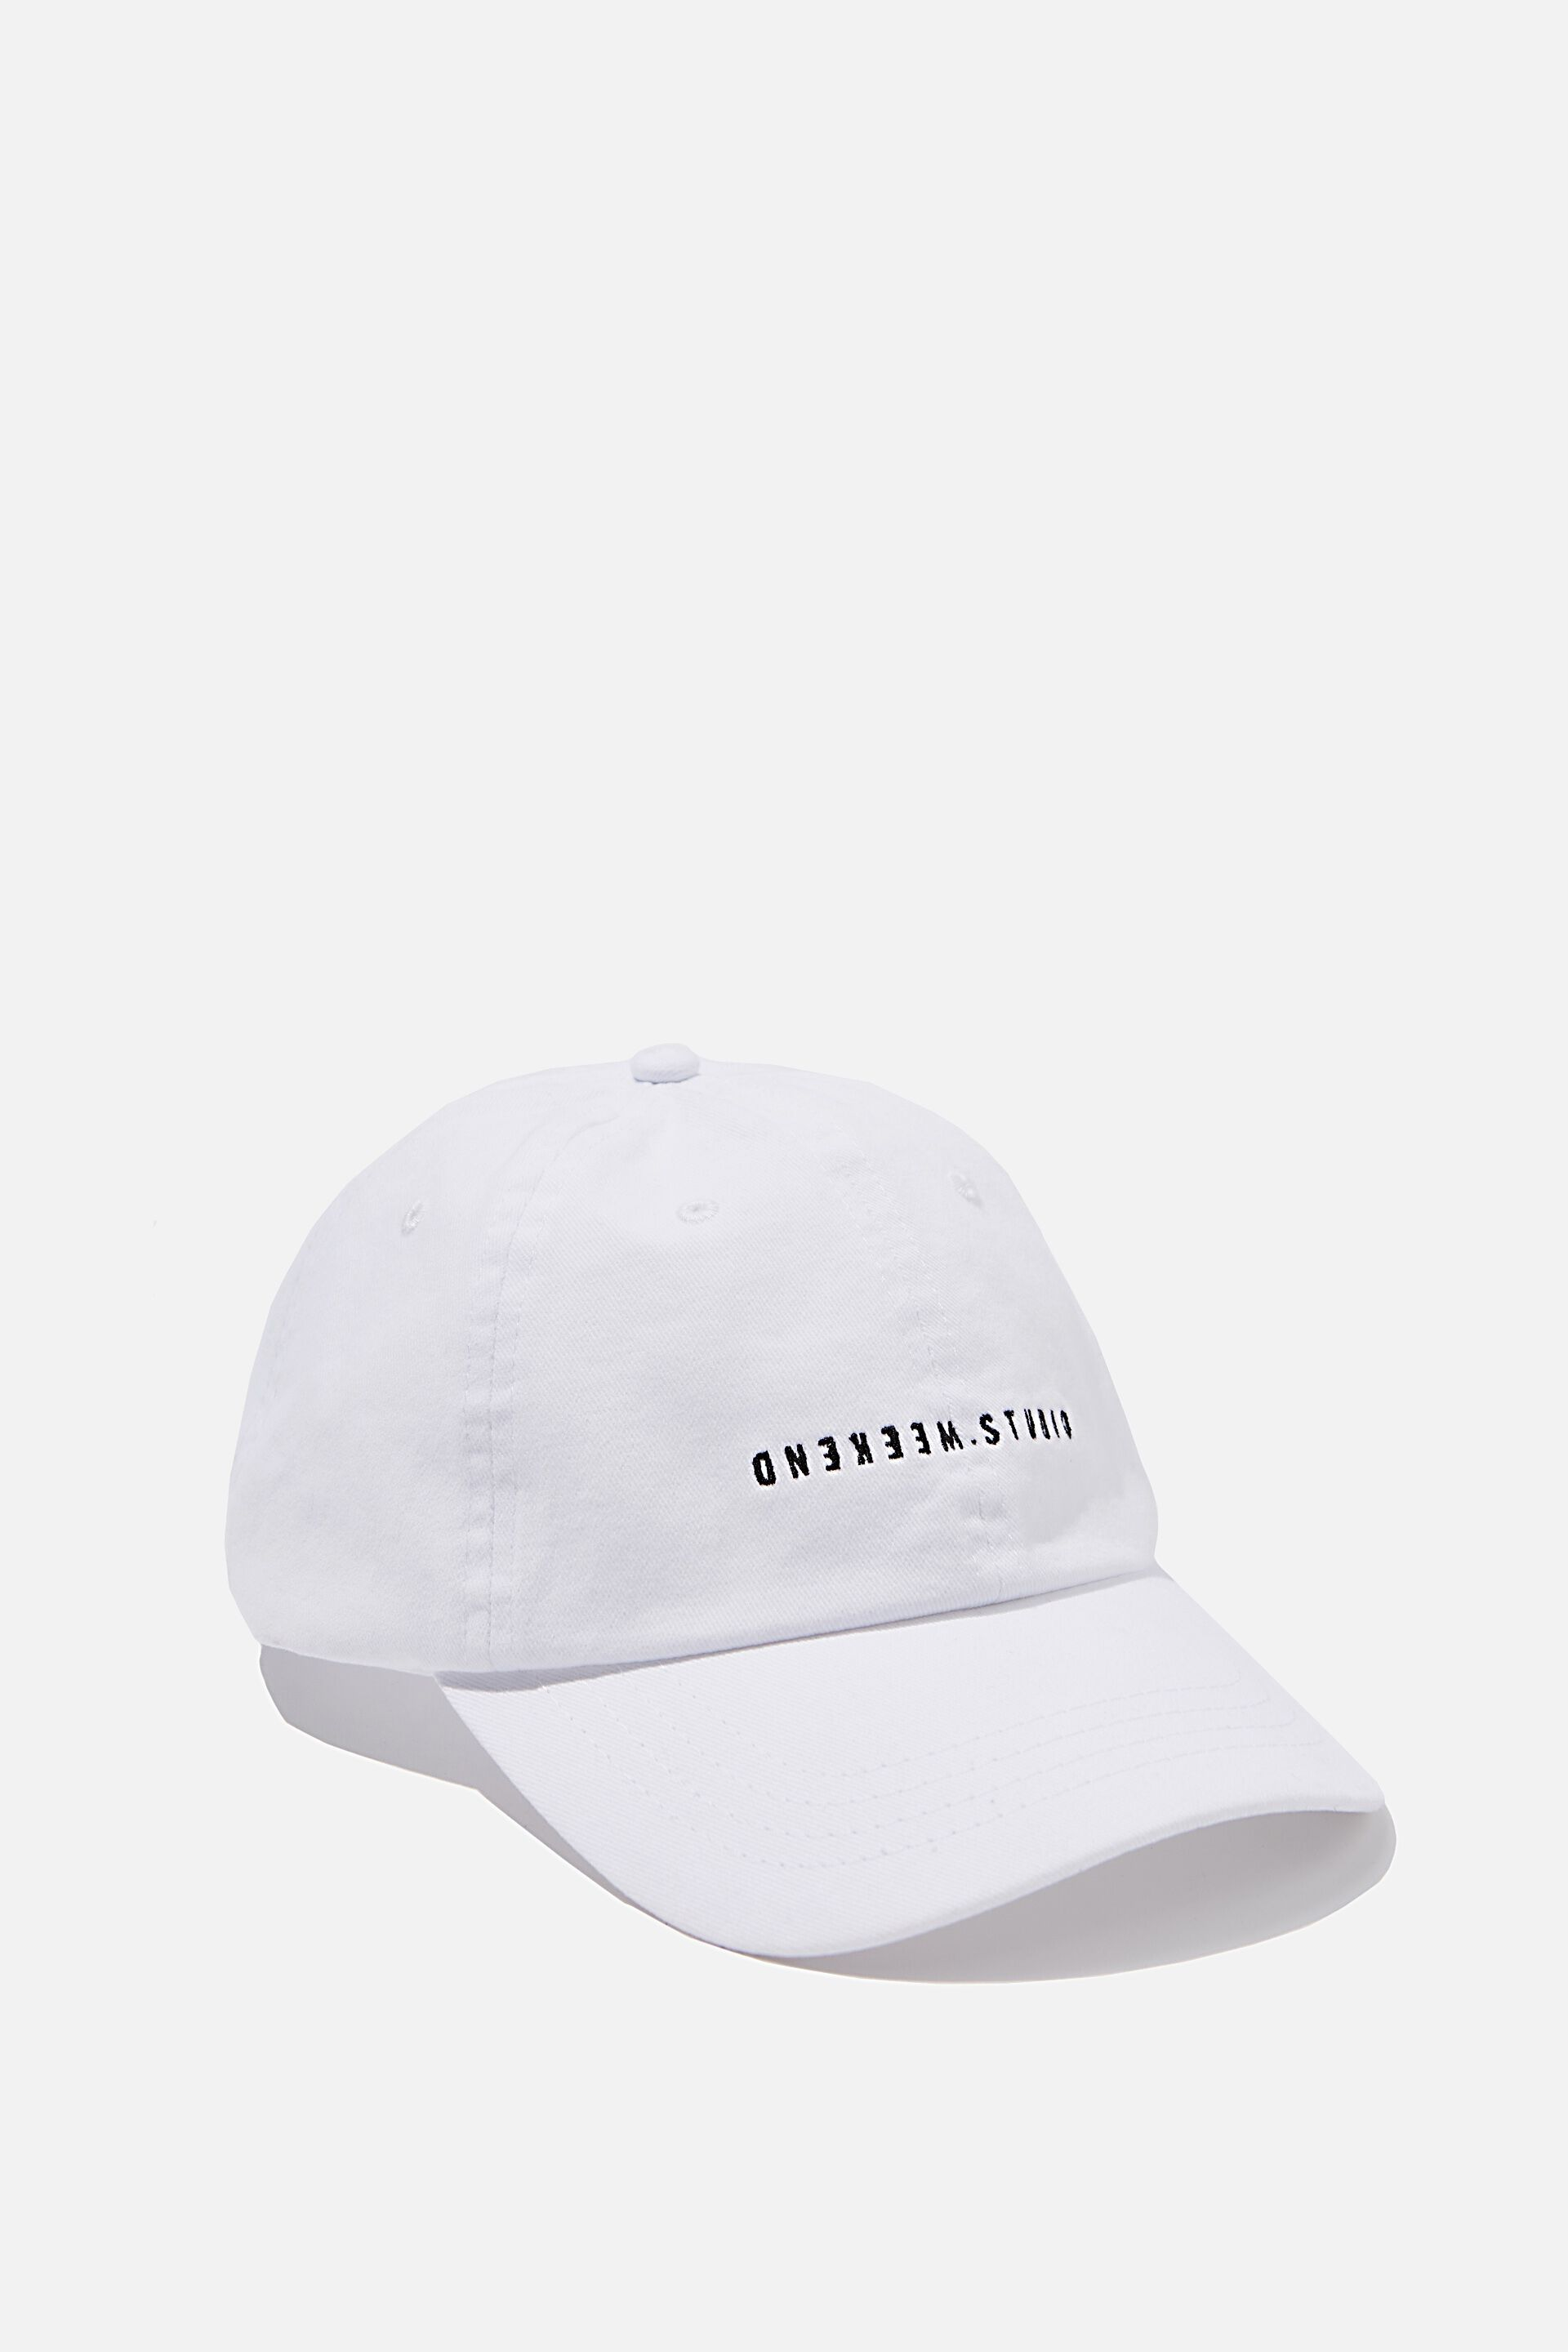 Baby 100/% Cotton Embroidered Personalised Hat With The Saying 50/% Mum 50/% Dad